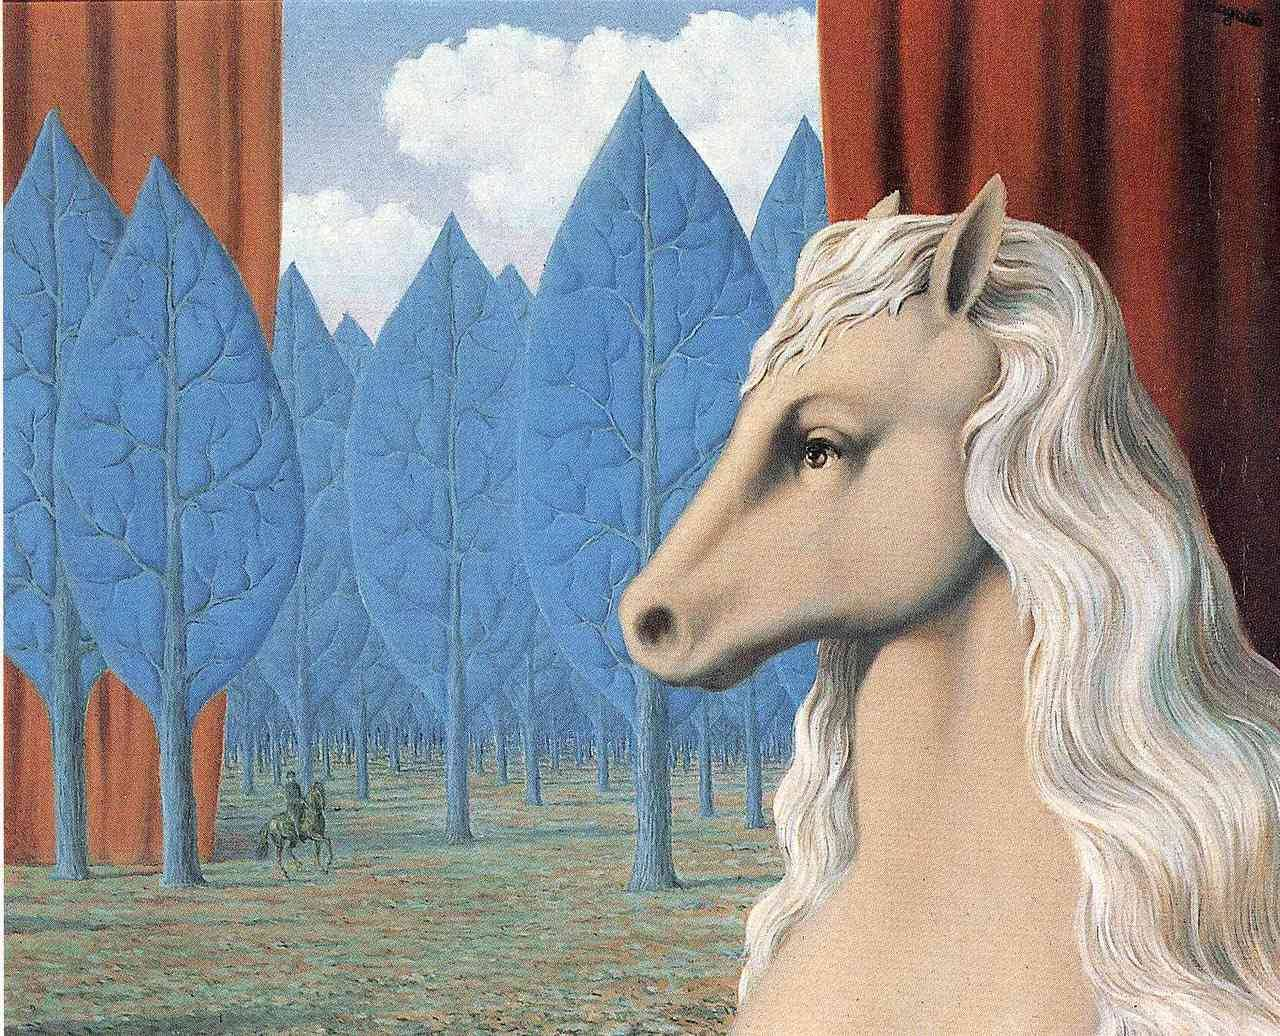 Pure reason, Rene Magritte